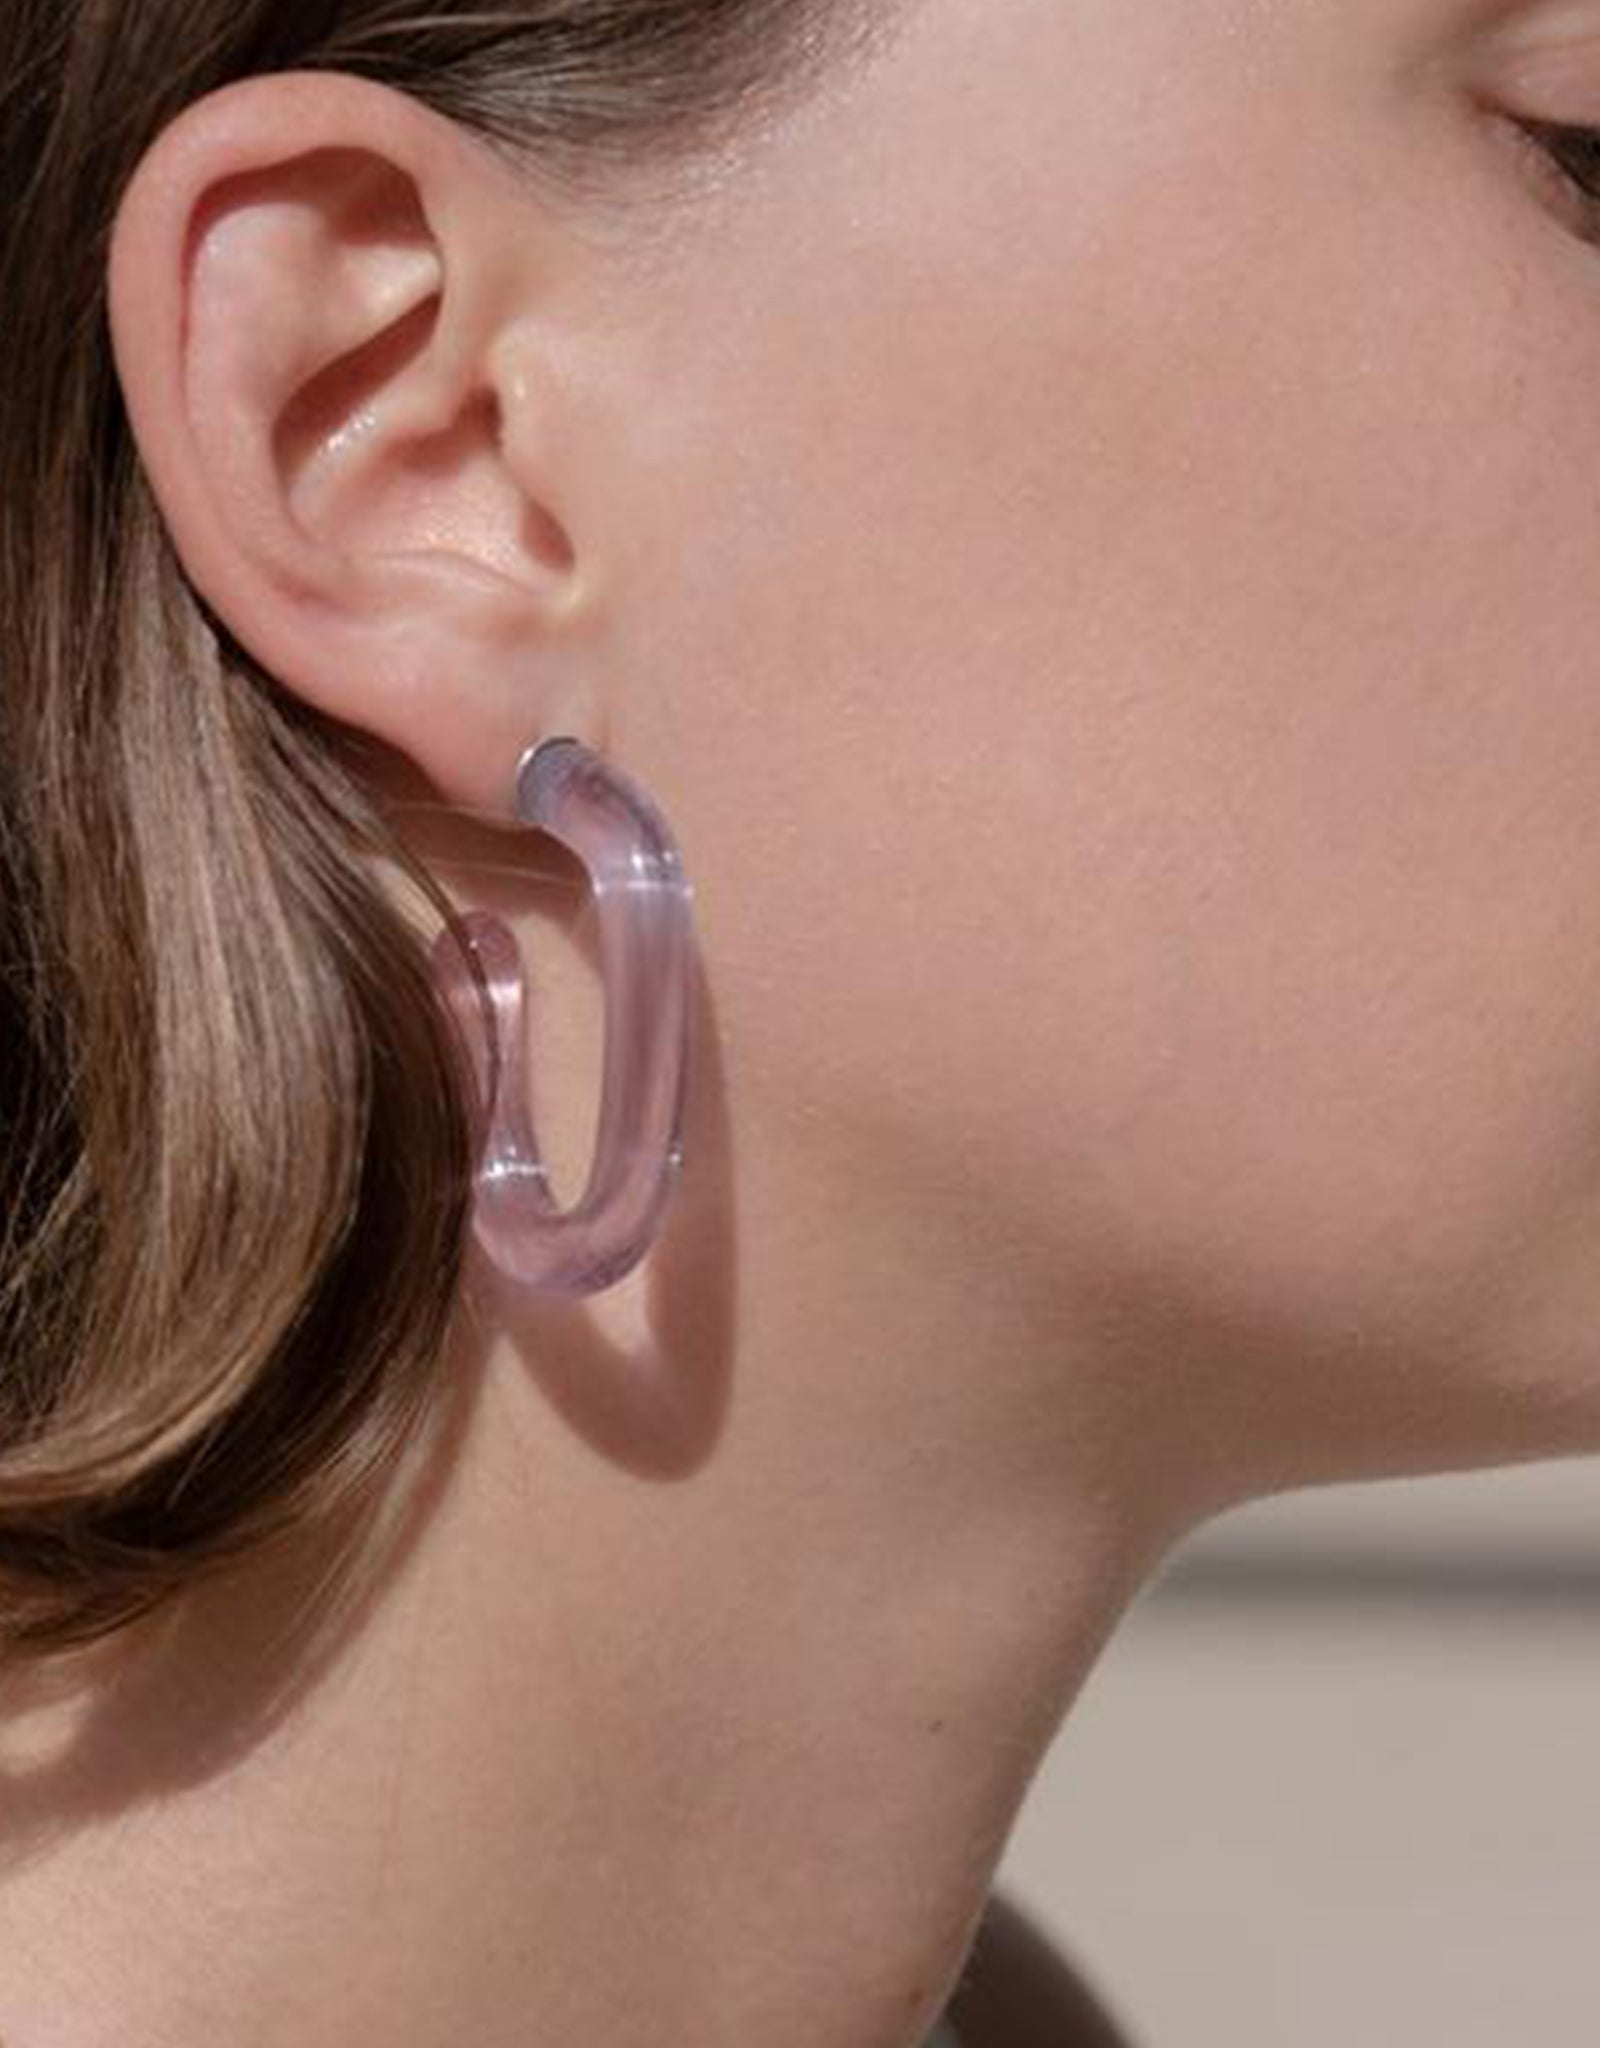 Luminous Glass Lavender Hoop Earrings by Leigh Miller on model. Available at FAWN Toronto.